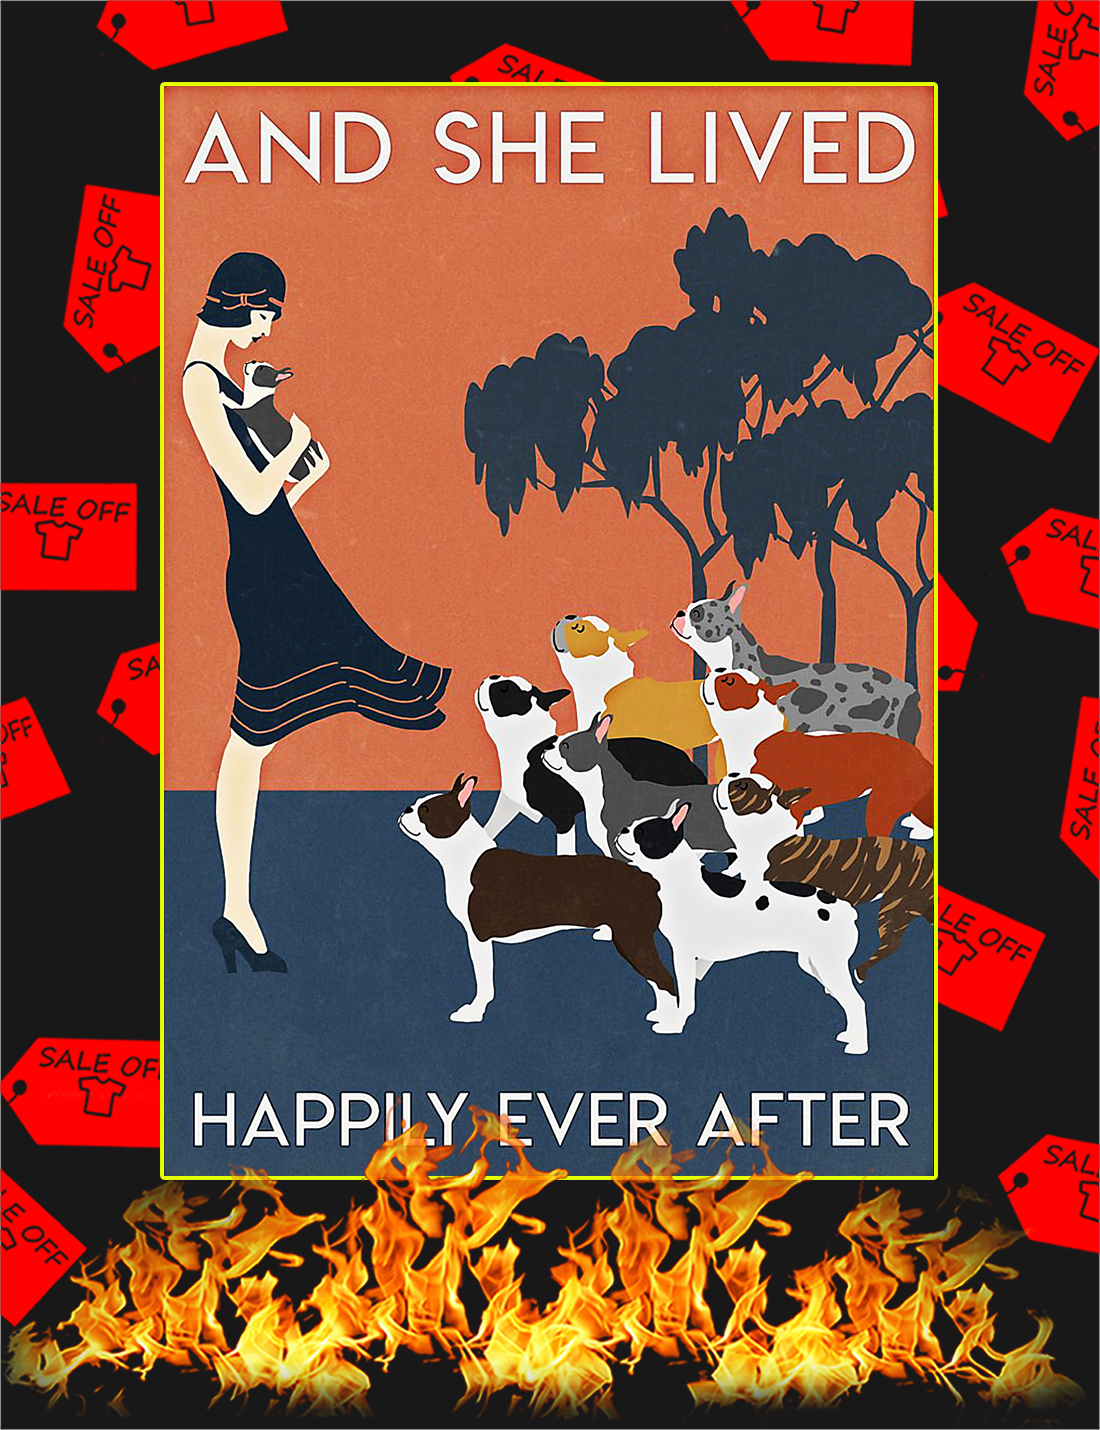 Boston terrier And she lived happily ever after poster - A4